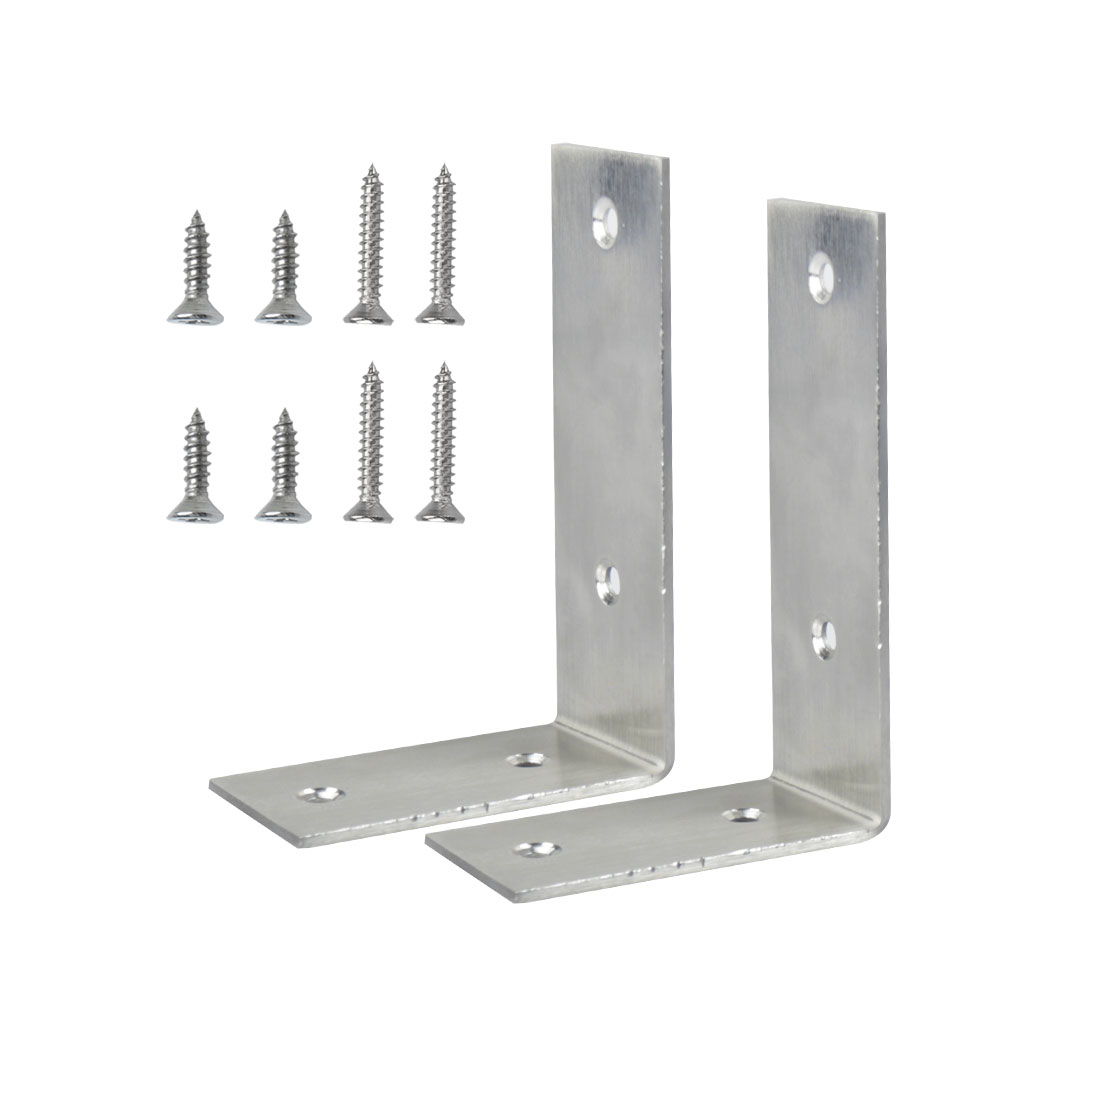 Angle Bracket Stainless Steel Brace Fastener Support w Screws 125 x 85mm, 2pcs